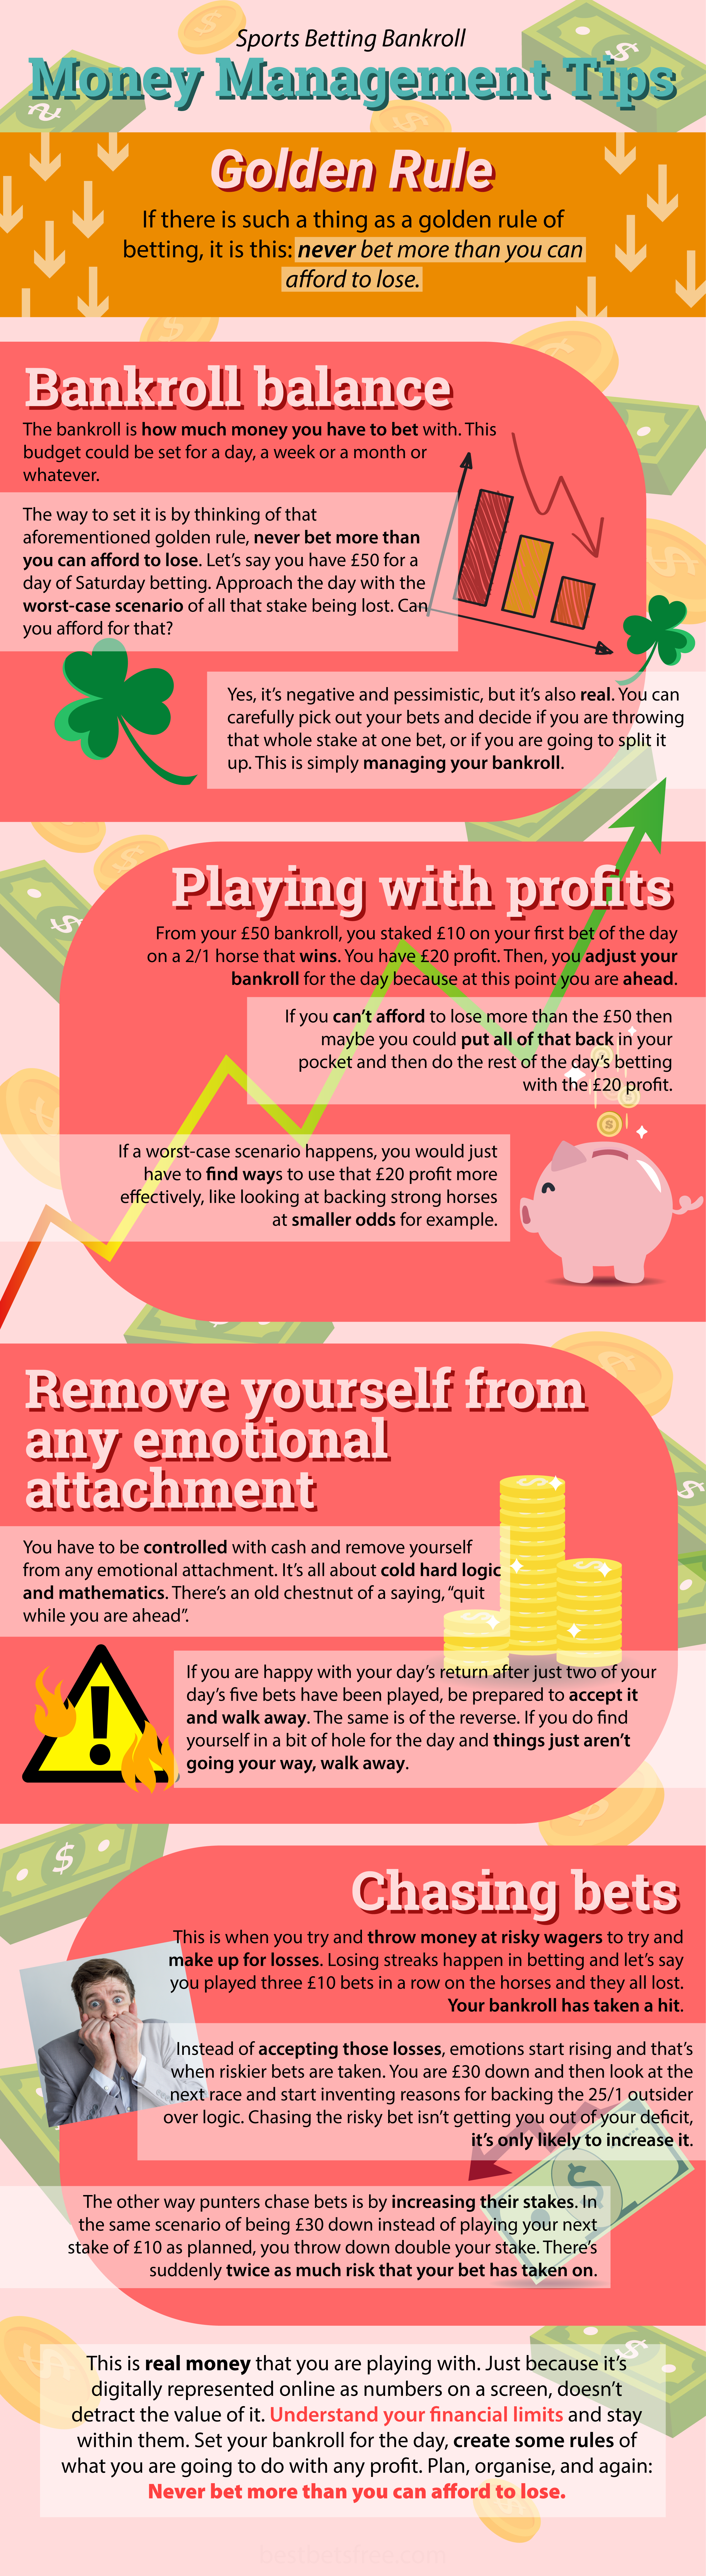 Sports Betting Bankroll Money Management Tips Infographic